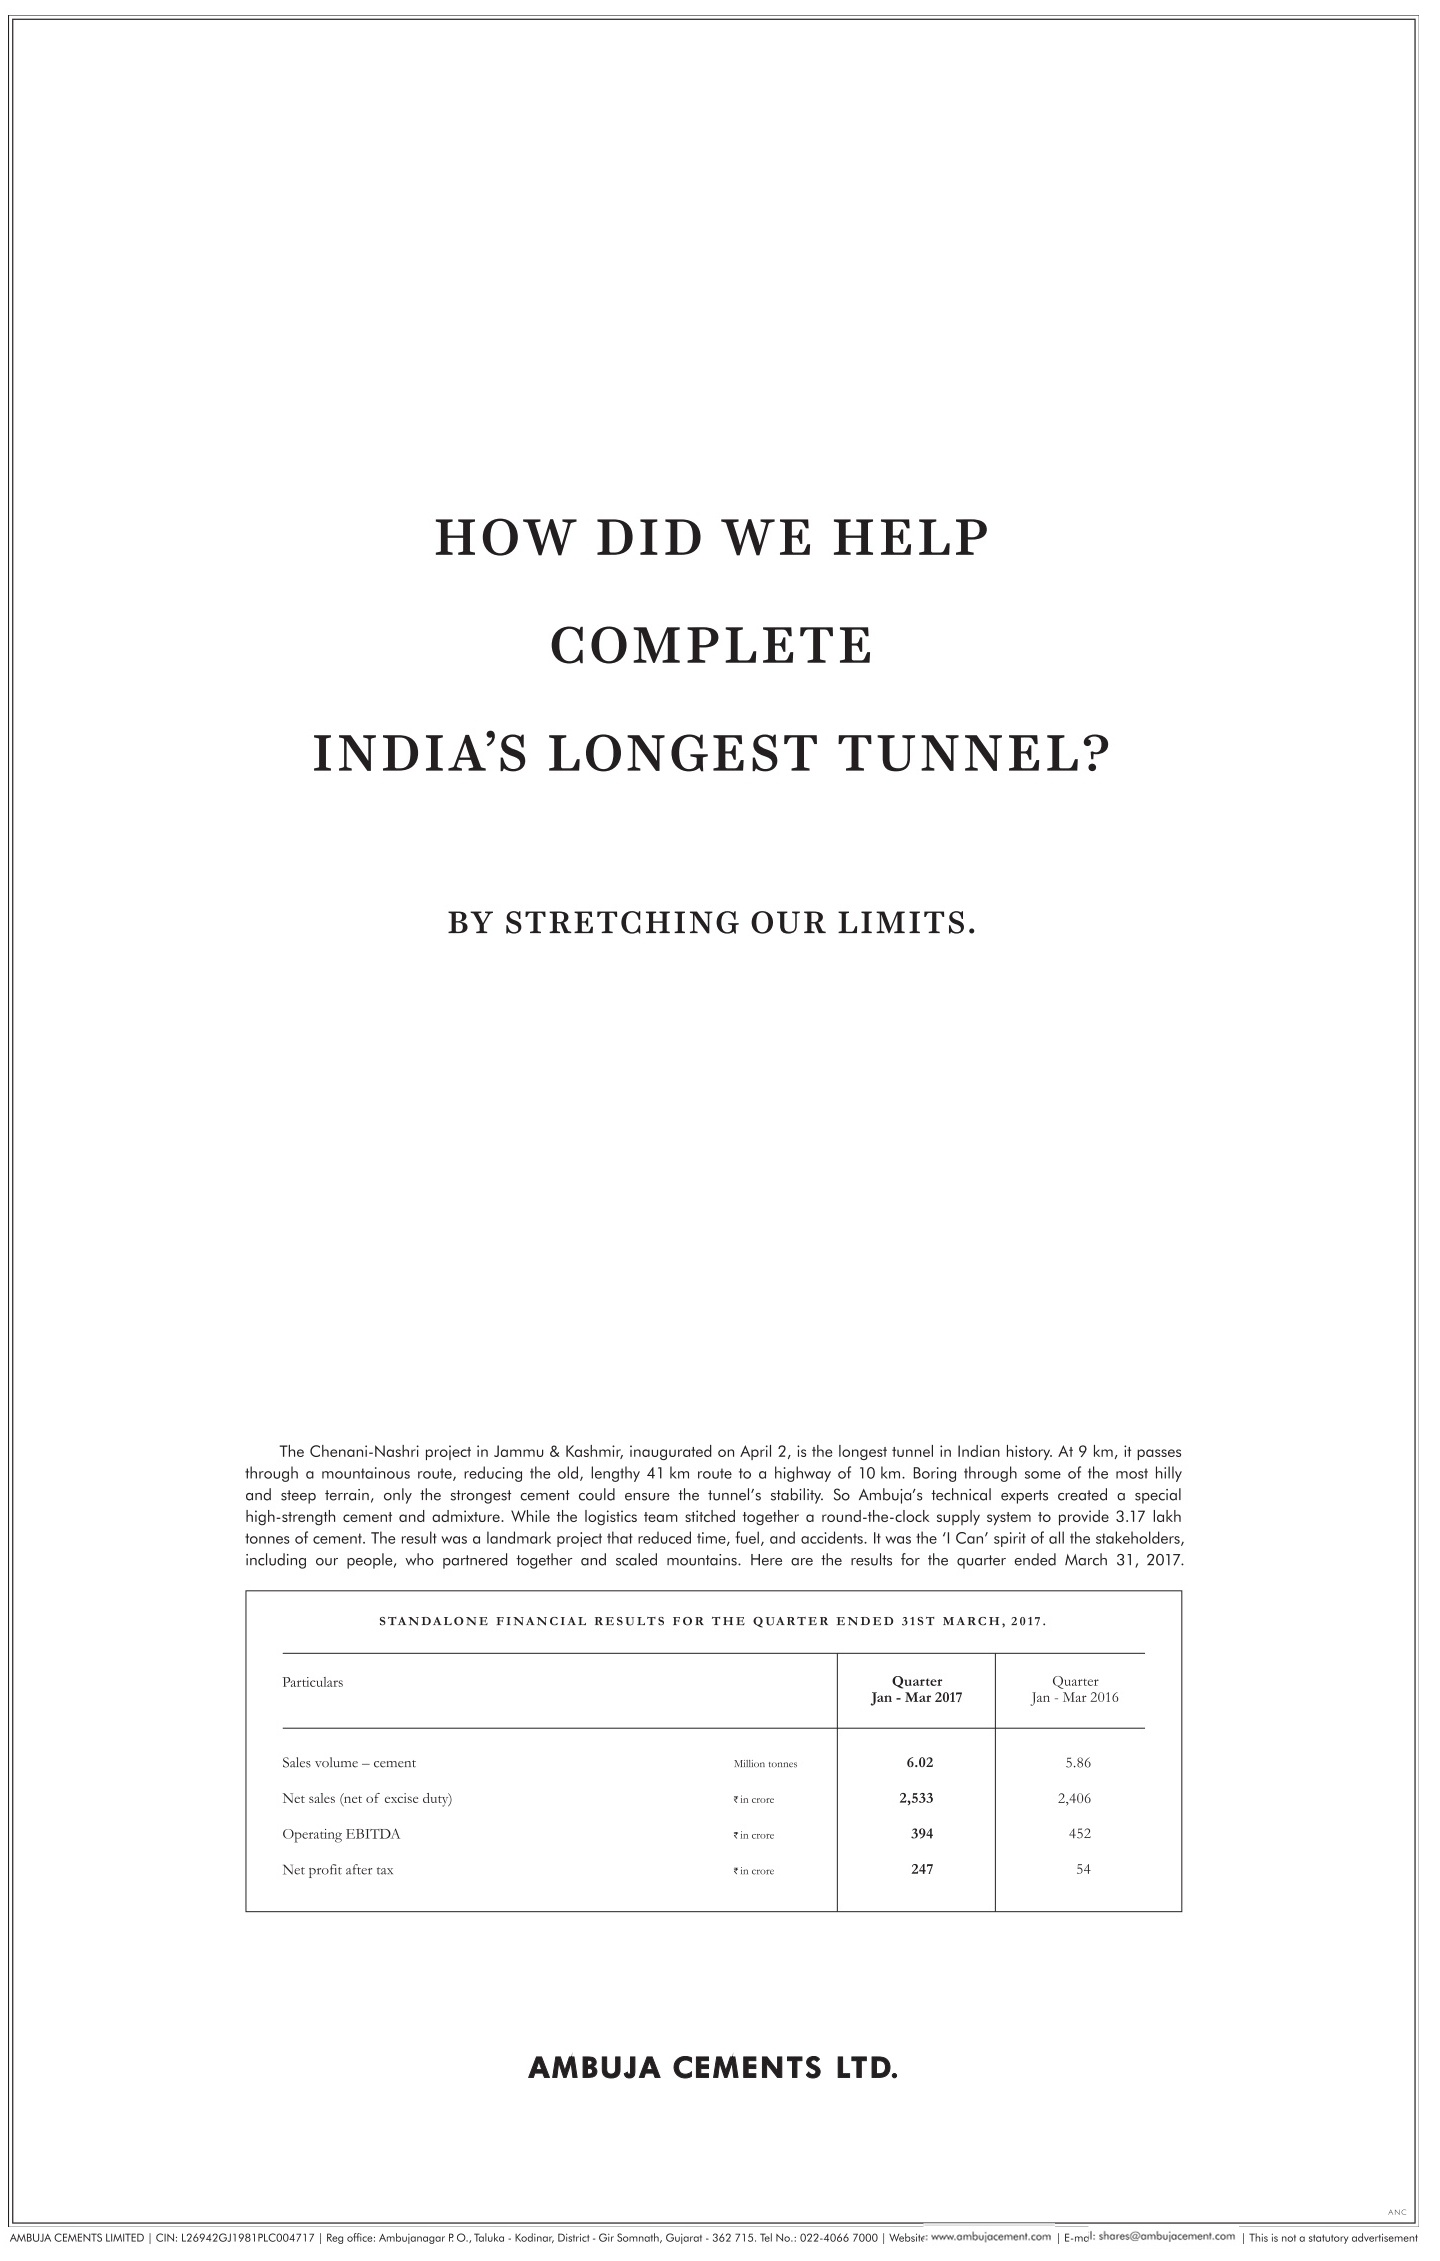 Given that print advertising craft has almost vanished from Indian  advertising, this was refreshing to see.